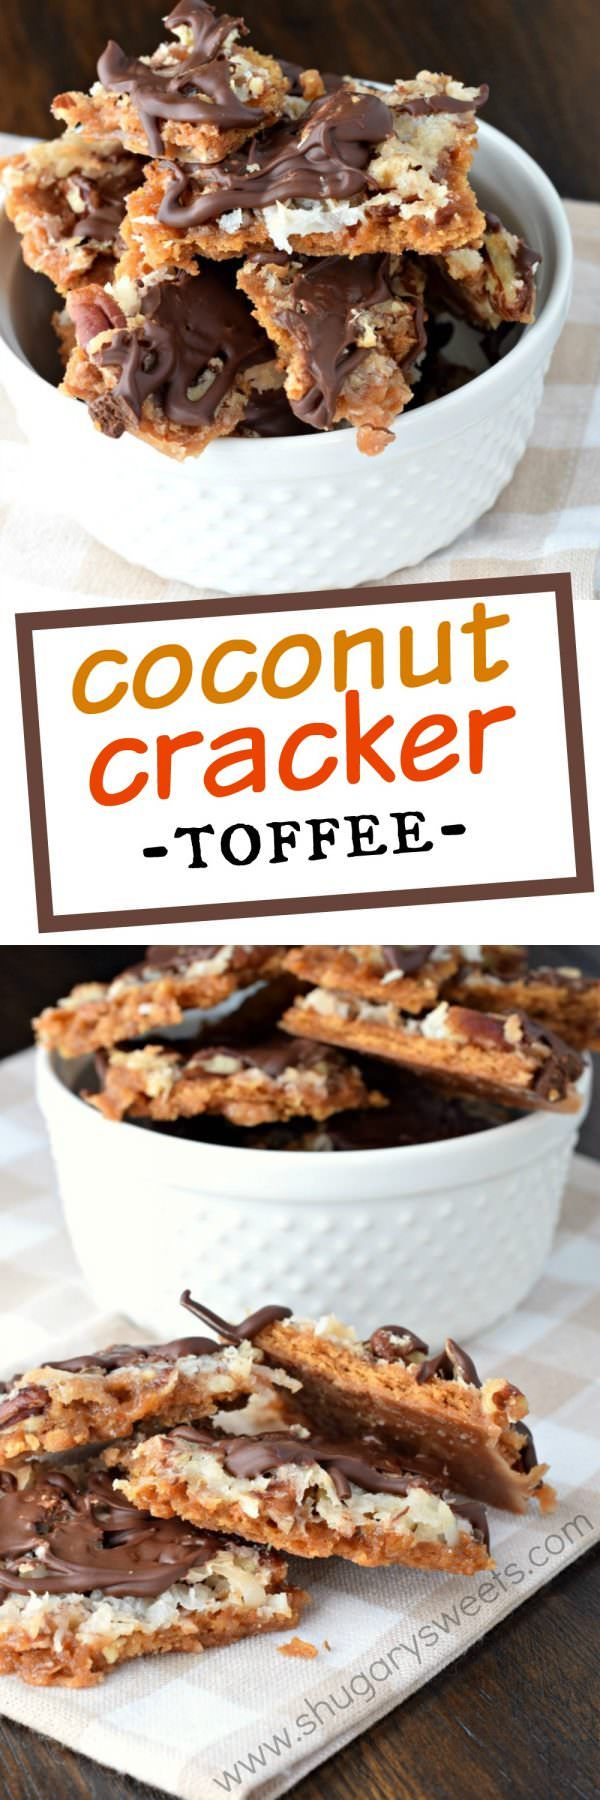 Delicious Caramel Coconut Cracker Toffee is a scrumptious treat you must try! Transform those graham crackers into this decadent treat in just minutes! ~ Shugary Sweets